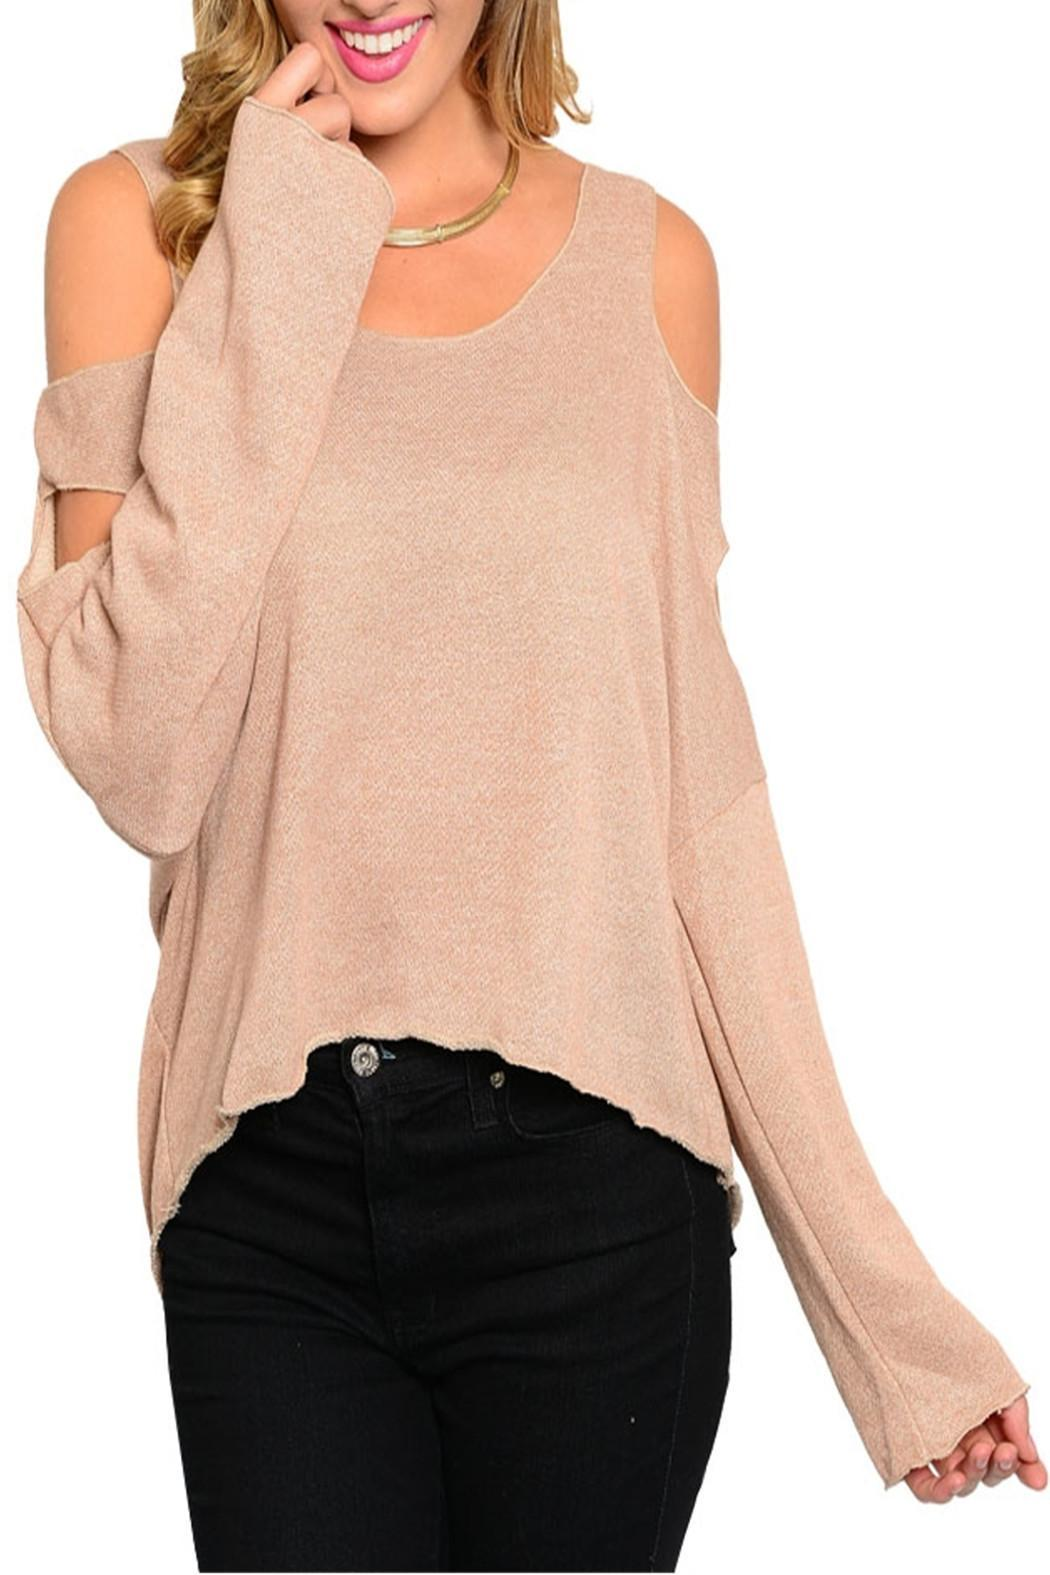 2 Hearts Nude Cutout Top - Front Cropped Image